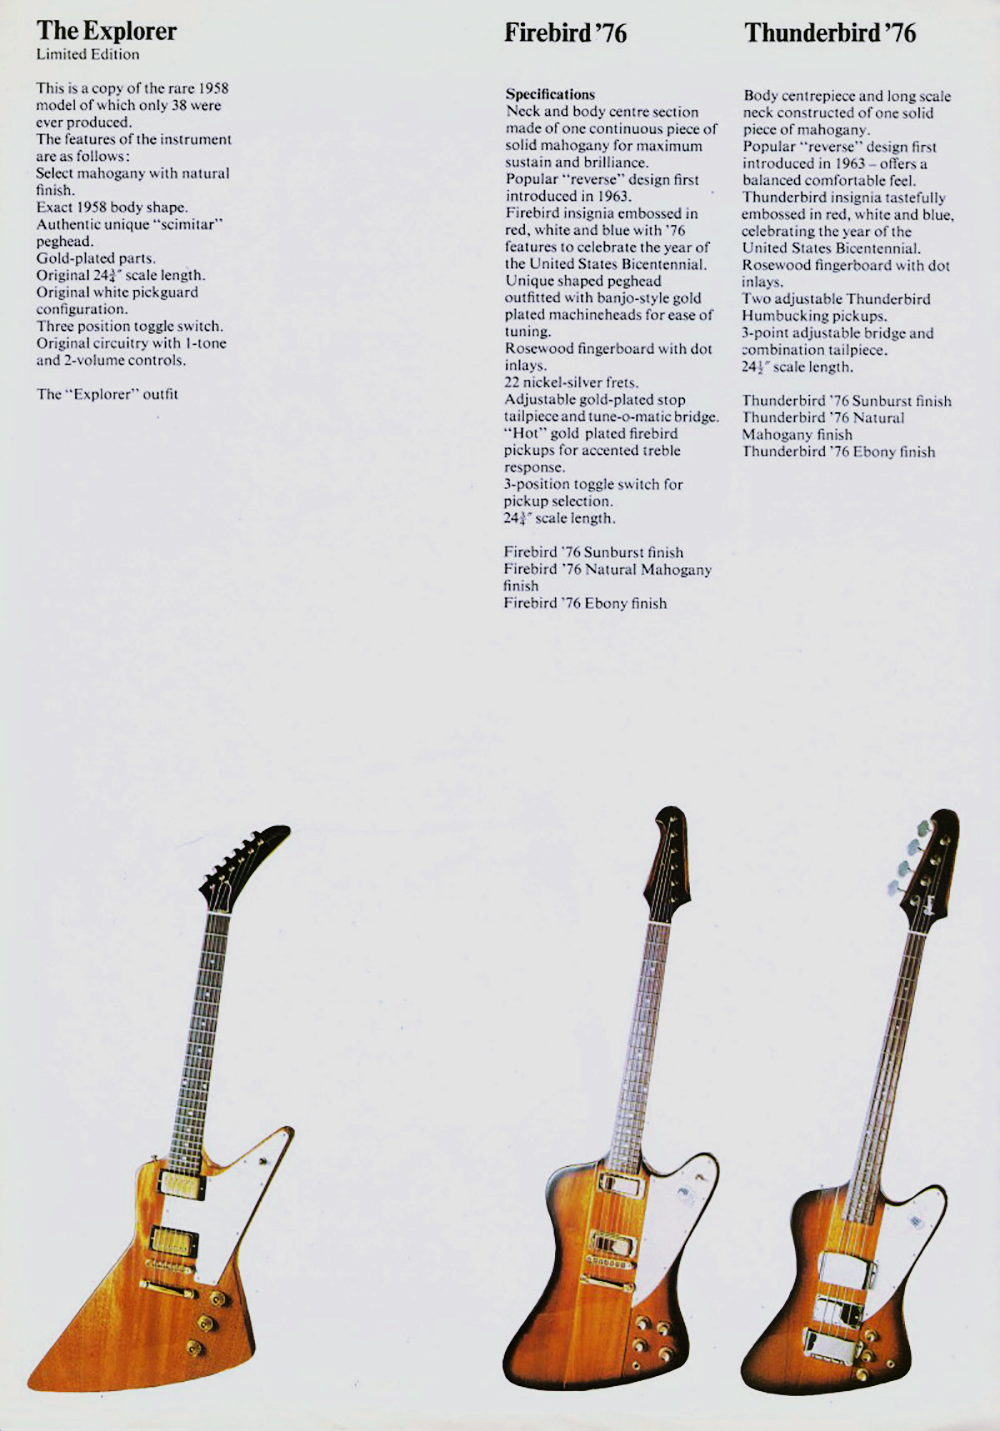 A page from the 1977 catalog. Even though Gibson released these models earlier, this is the 1st catalog these models appeared in.